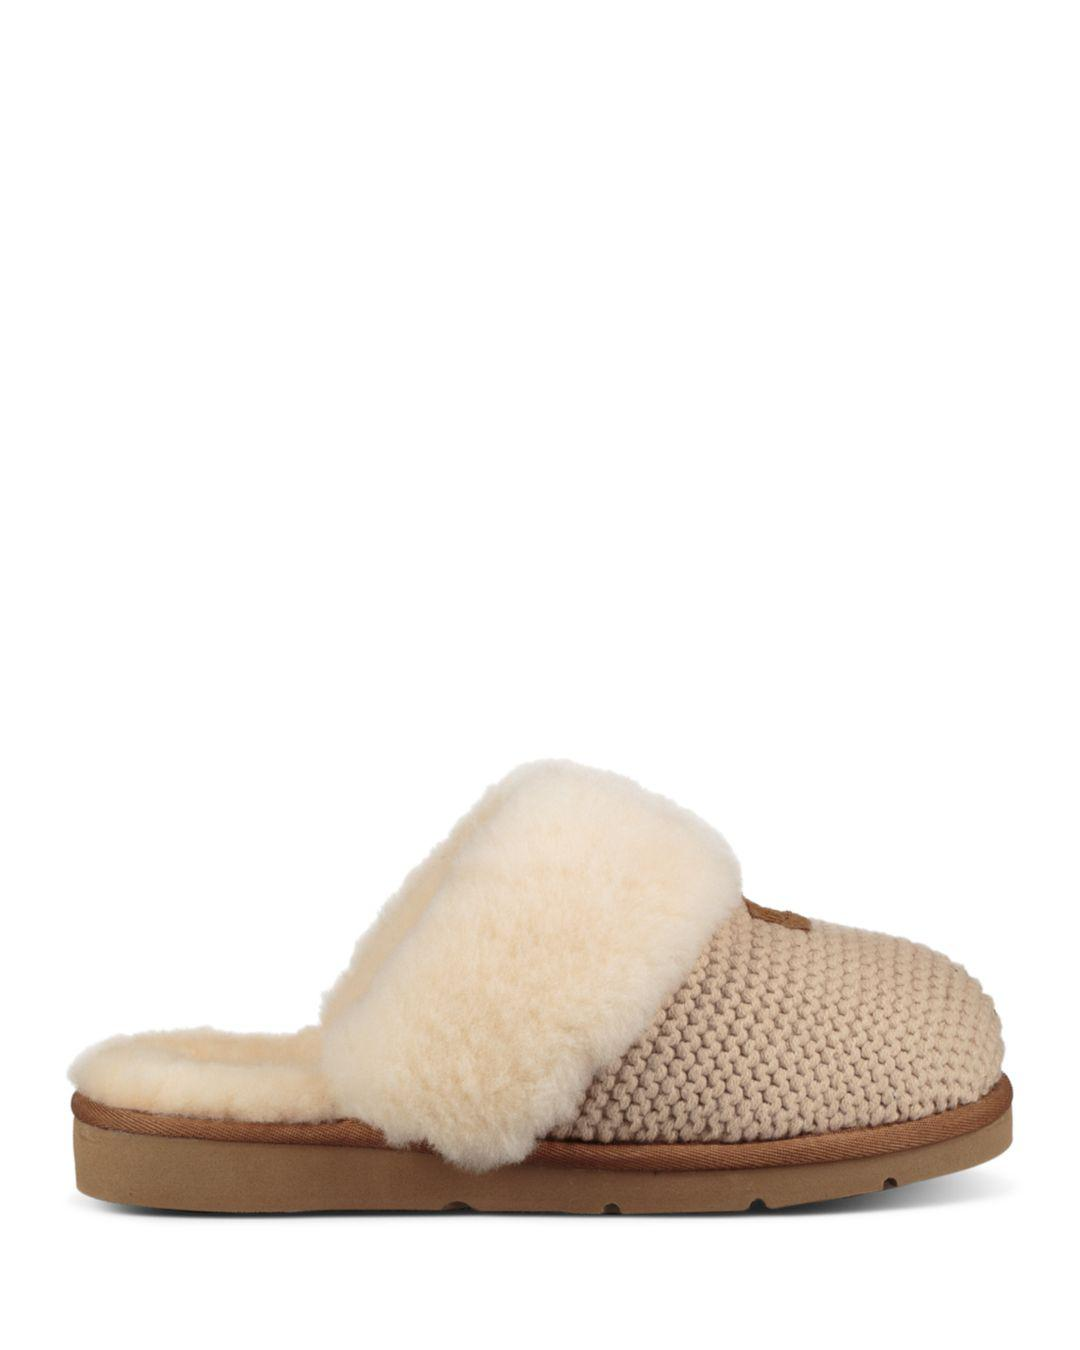 38c2bba26 Lyst - UGG Cozy Knit Slipper in Natural